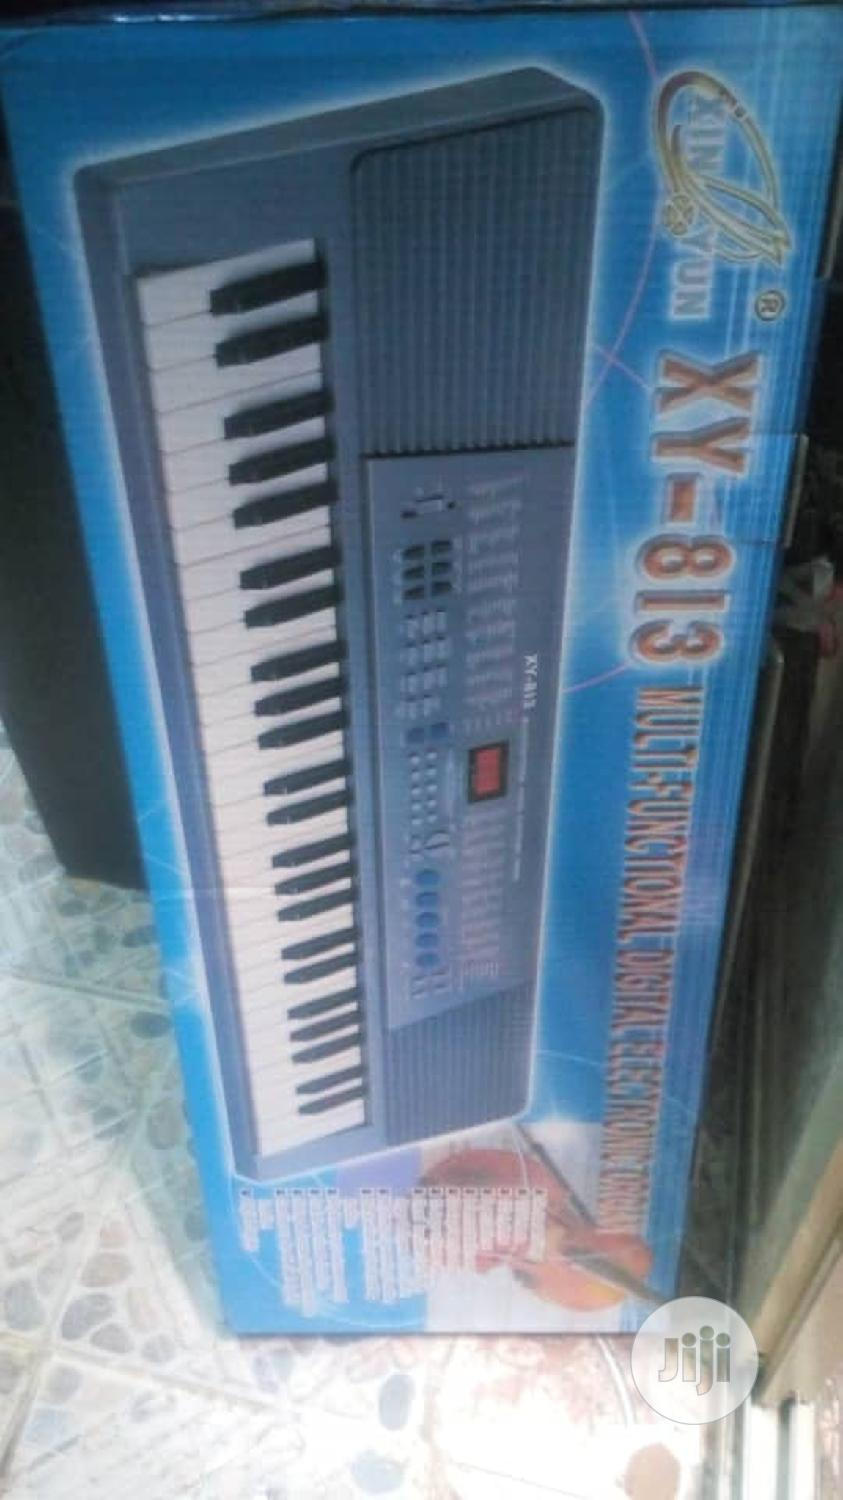 Learning Keyboard